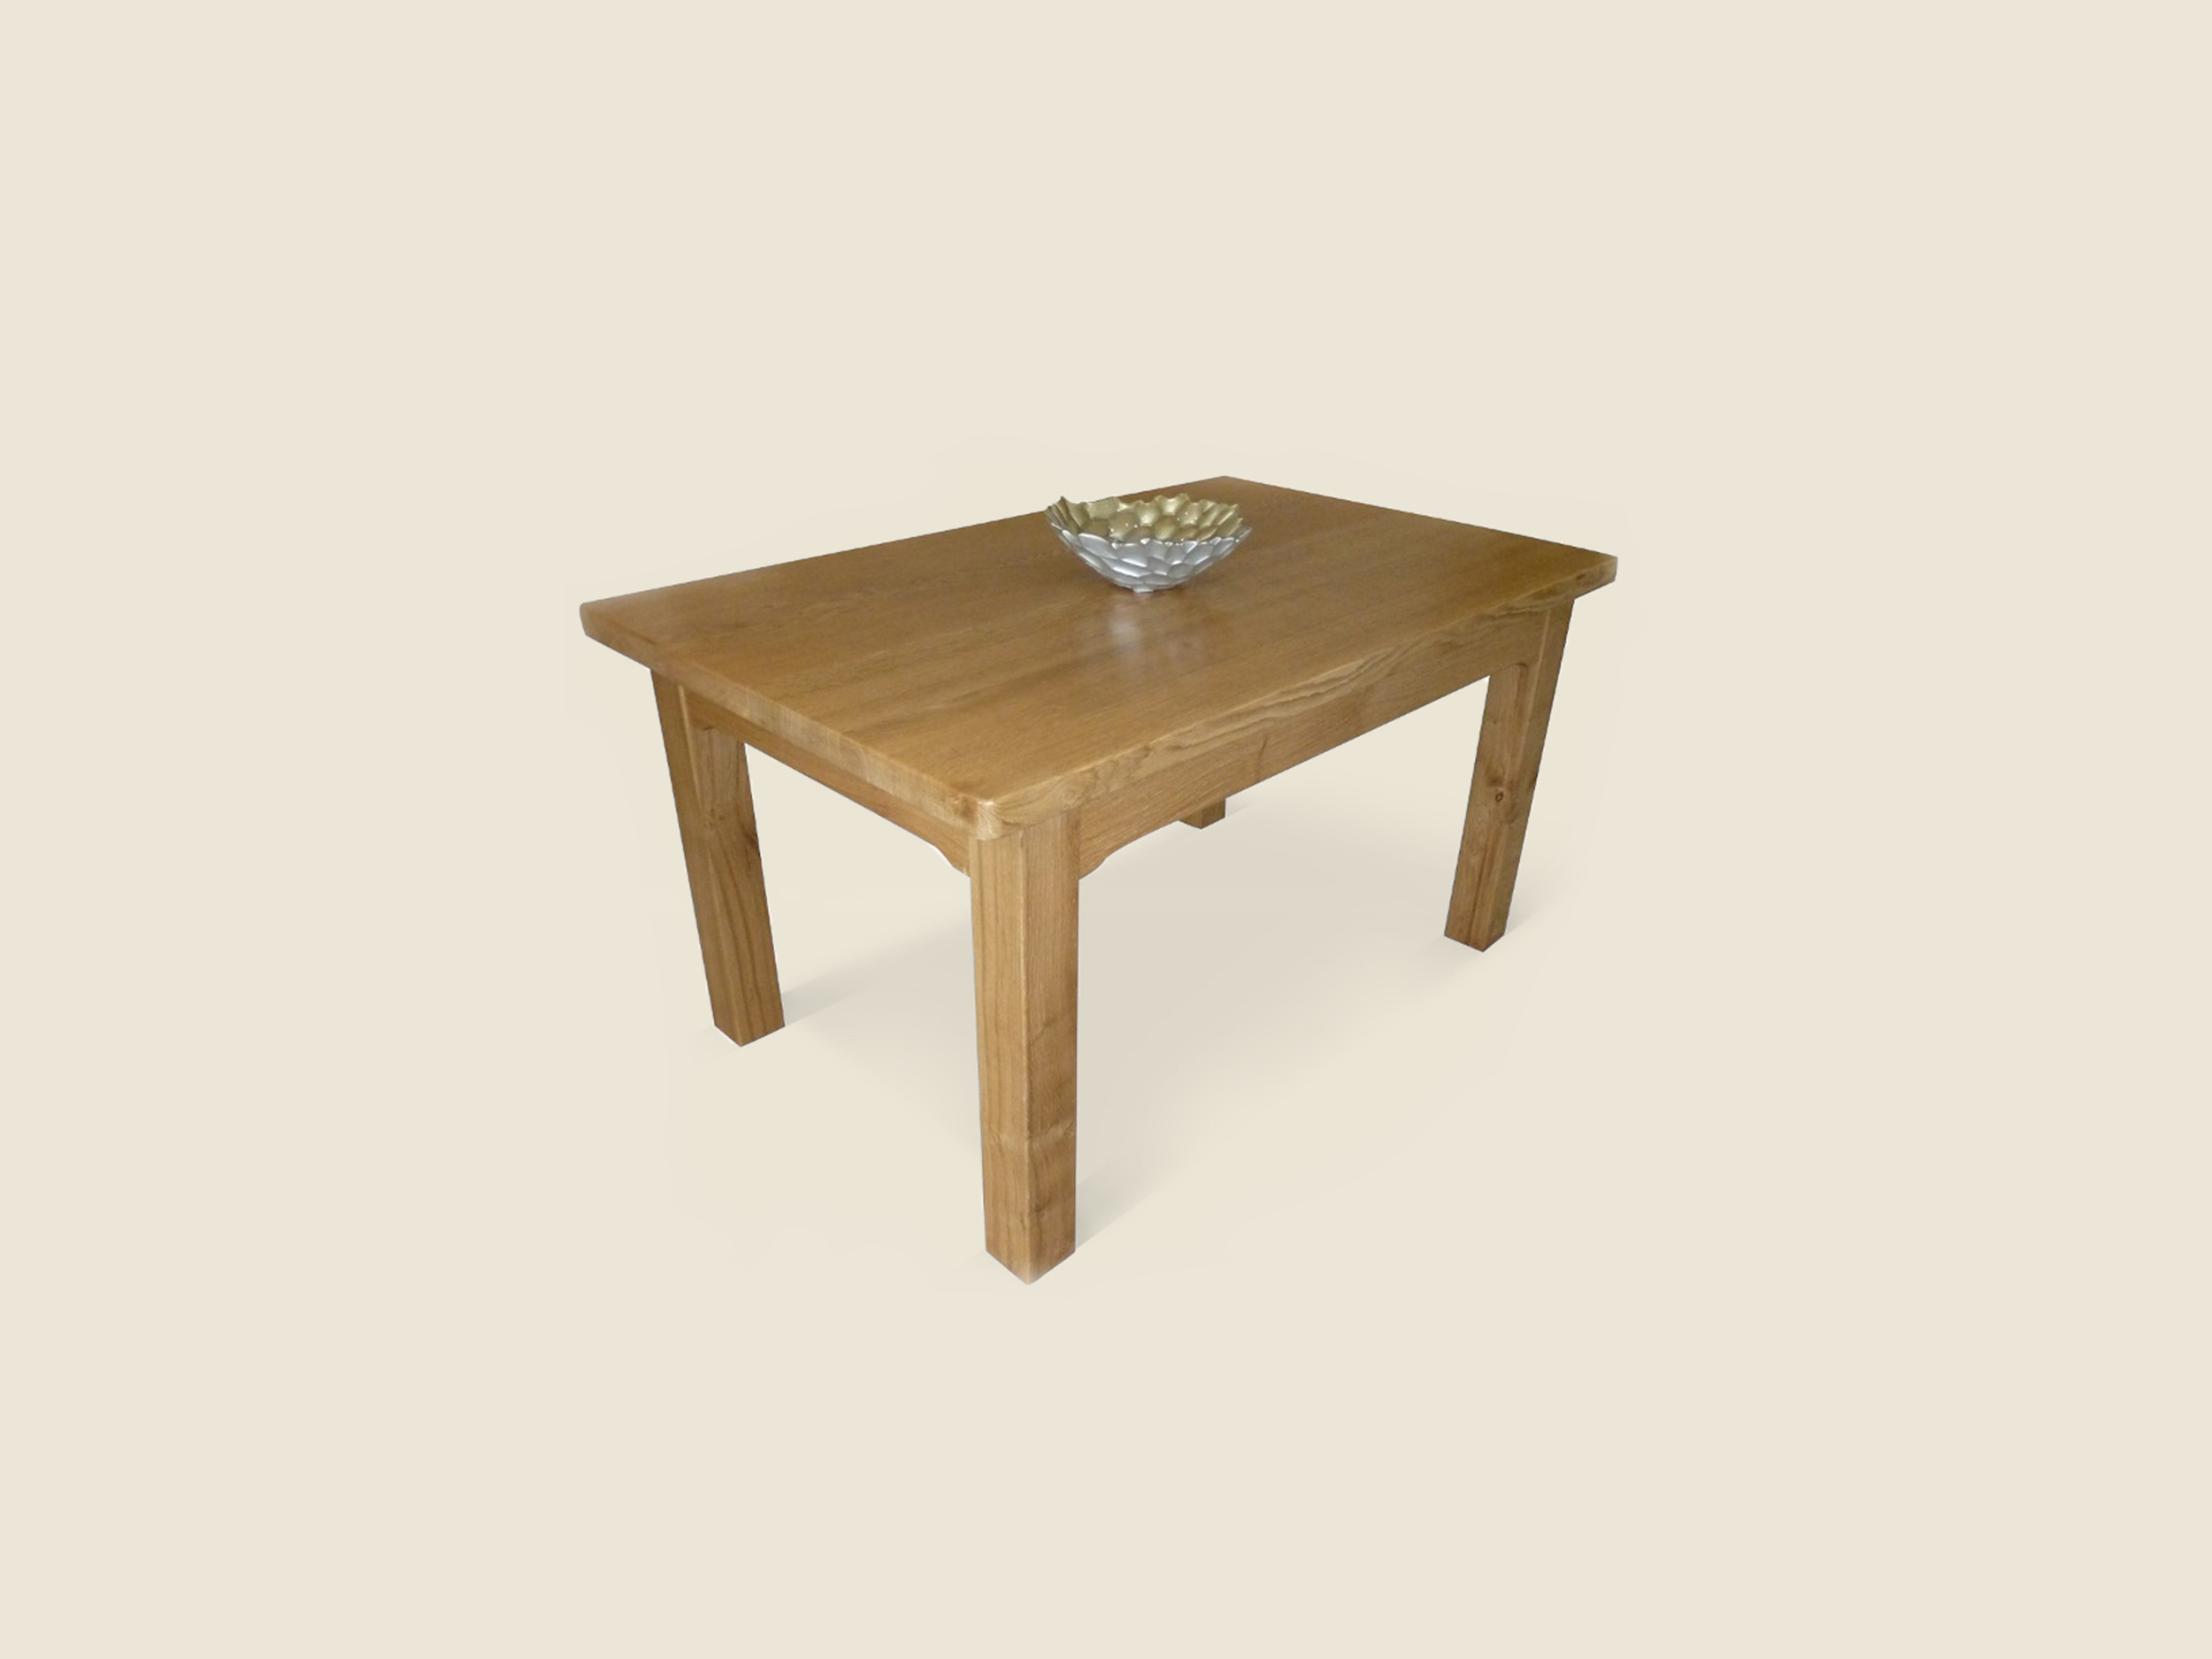 bf107_beaver_furniture_makers_farmhouse_kitchen_table.png